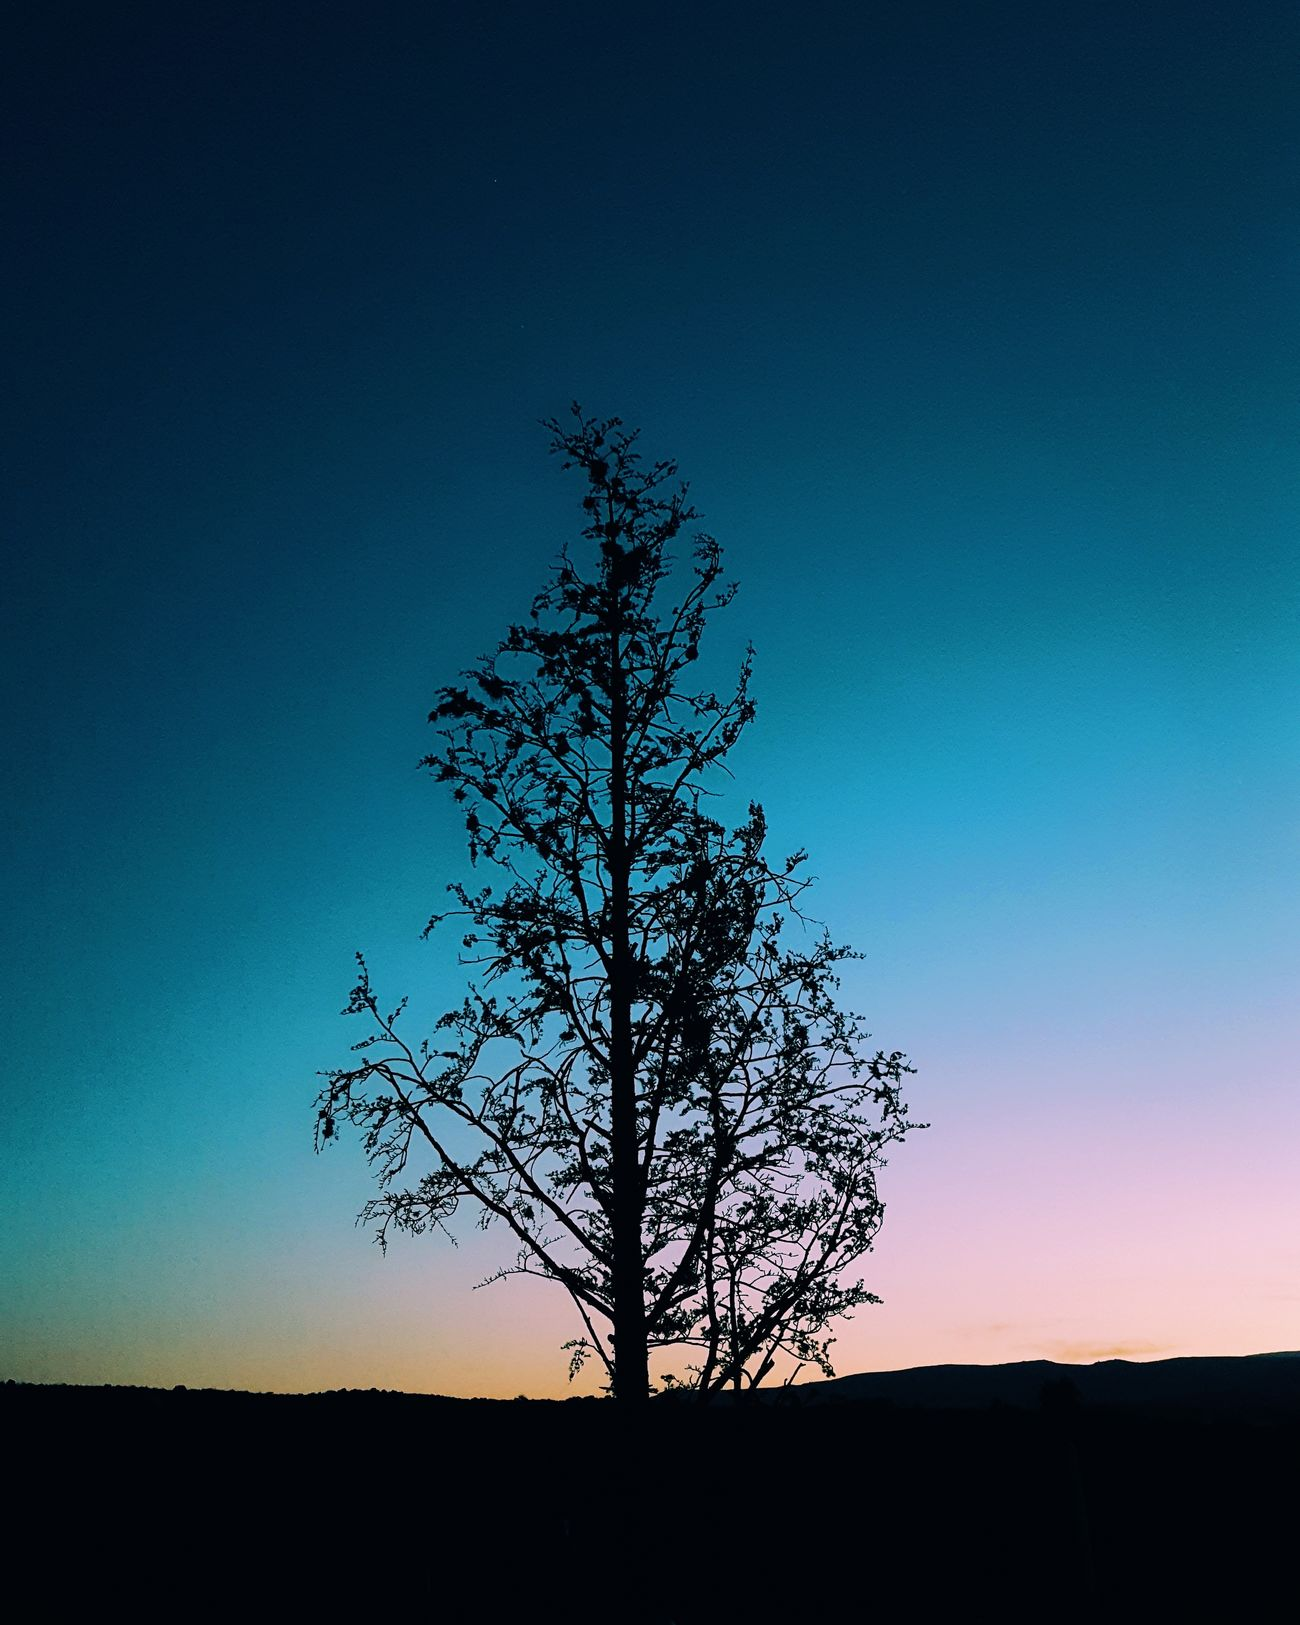 Tree Silhouette Landscape Tranquil Scene Tranquility Blue Clear Sky Beauty In Nature Nature Single Tree Bare Tree Branch Phoneography PhonePhotography Phone Relaxing